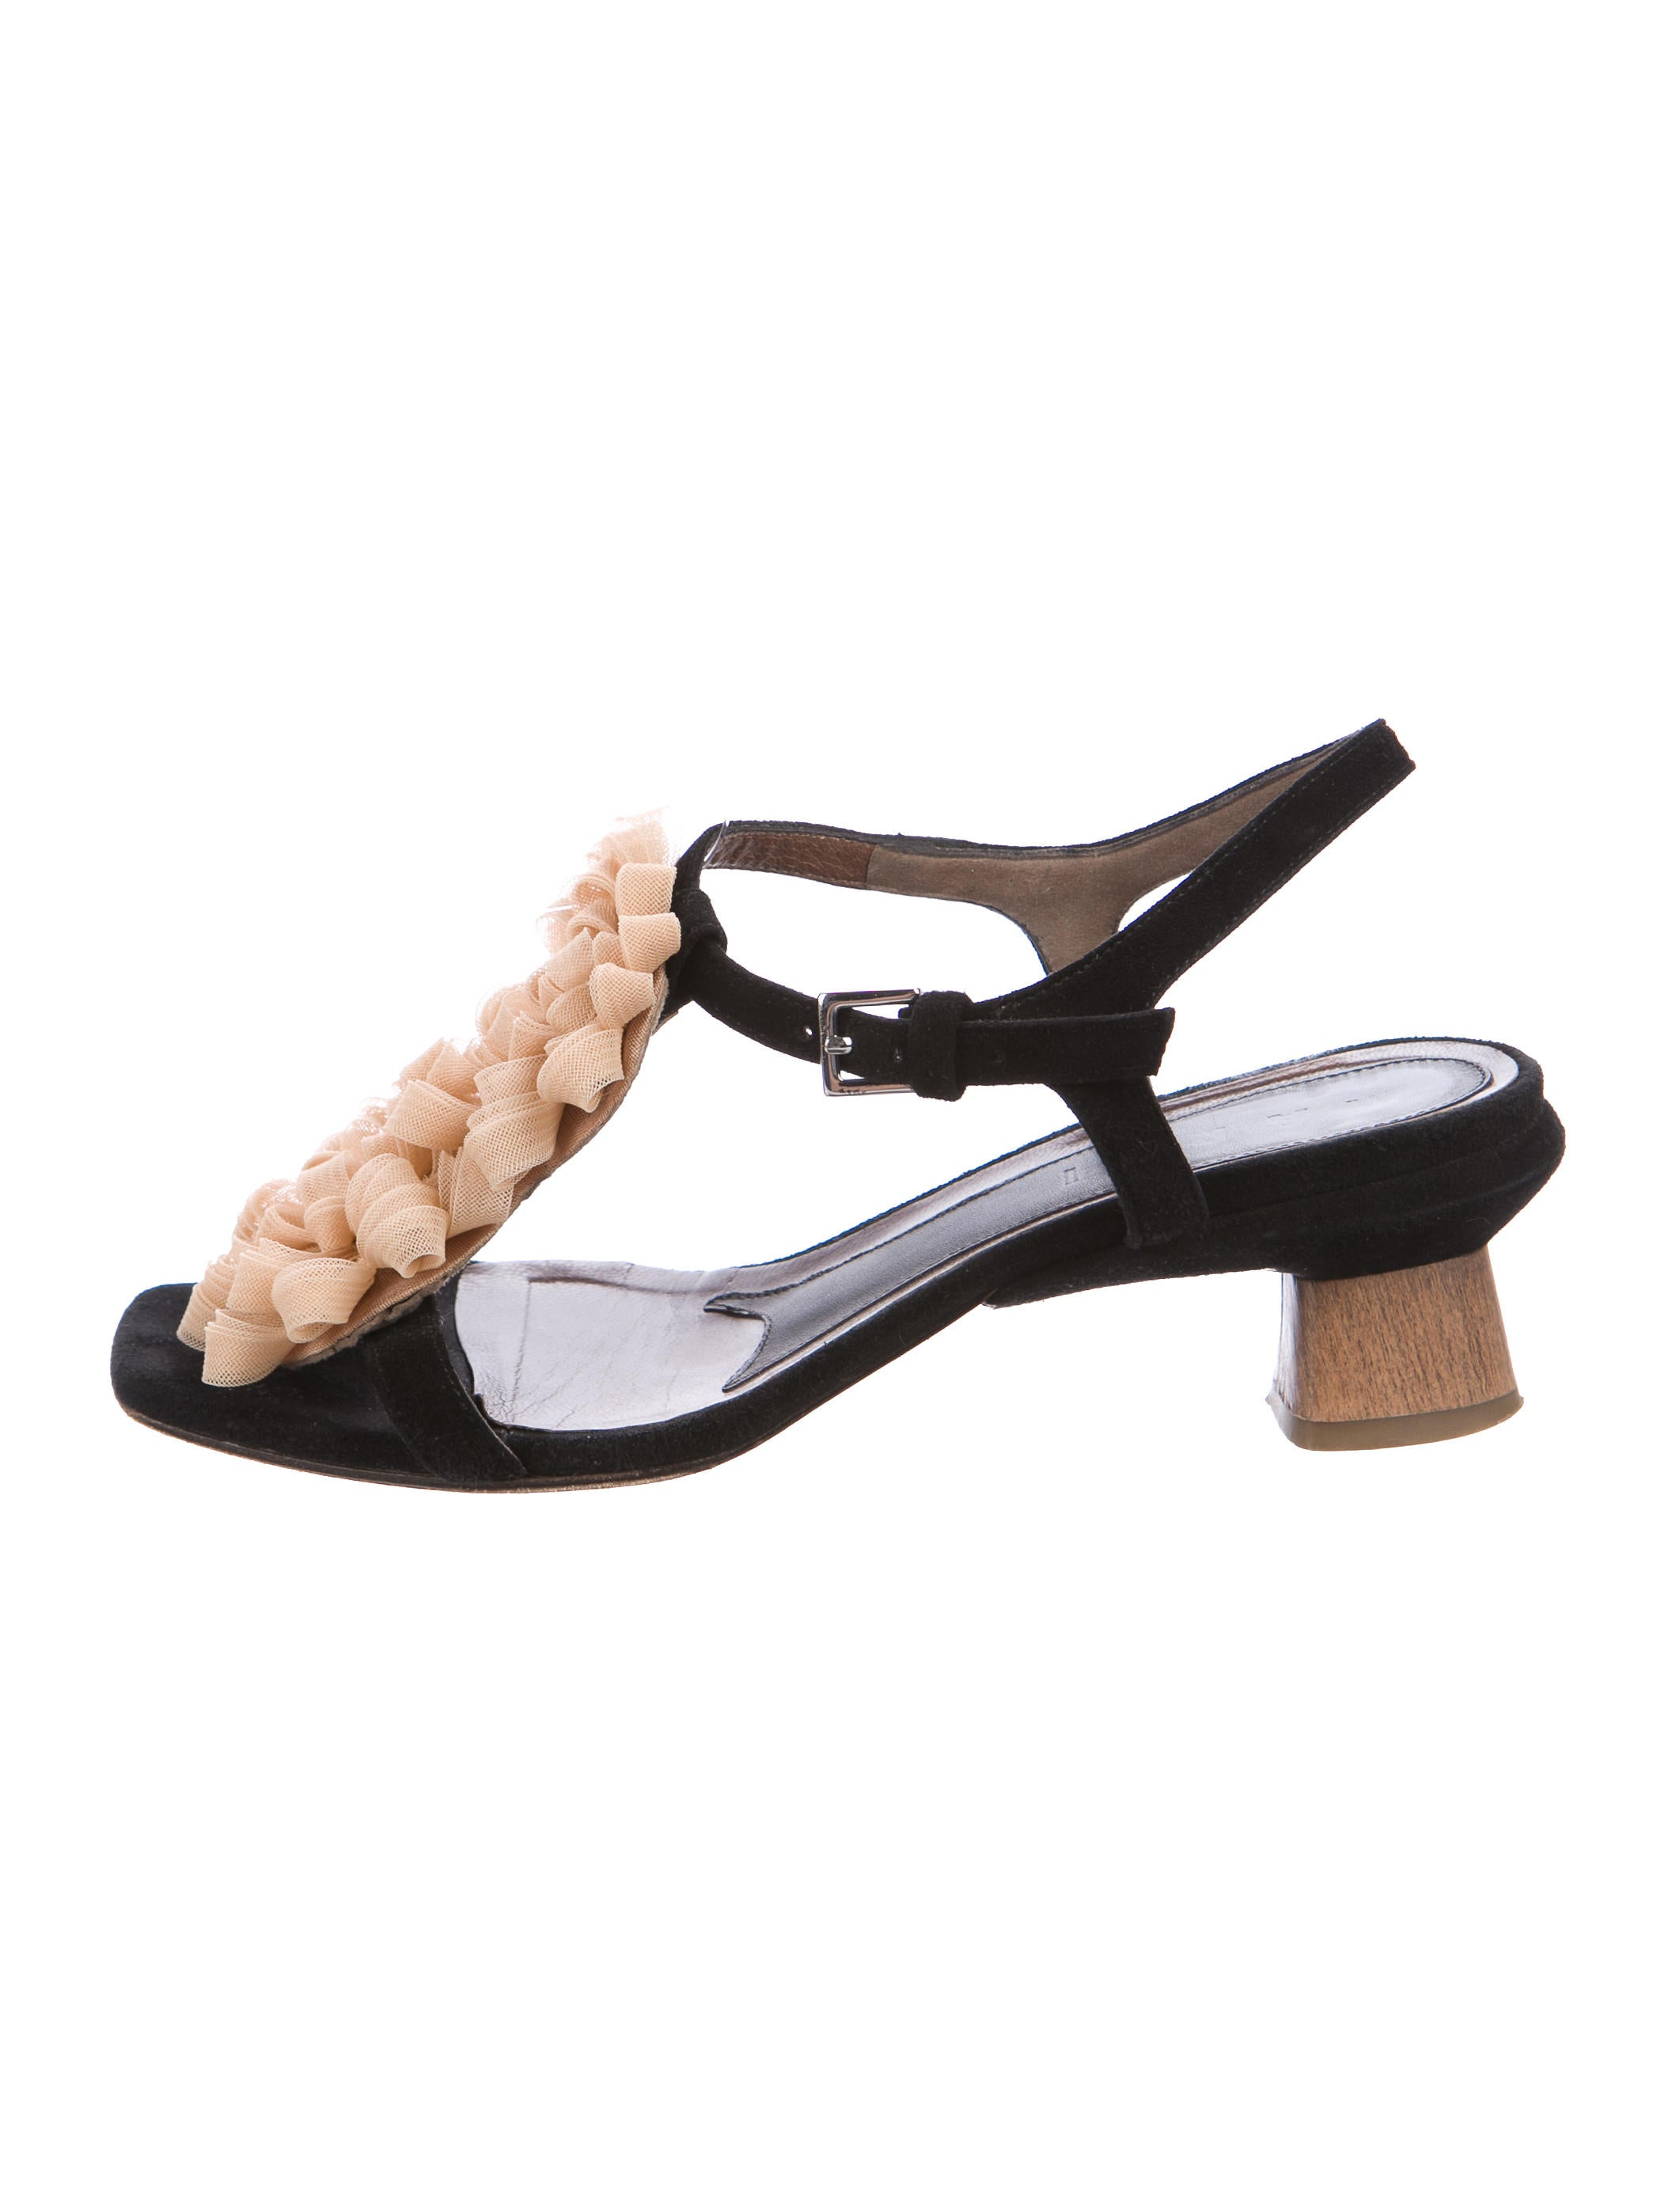 Marni Ruffle-Accented Suede Sandals low shipping fee cheap online 1OraSsvGiS